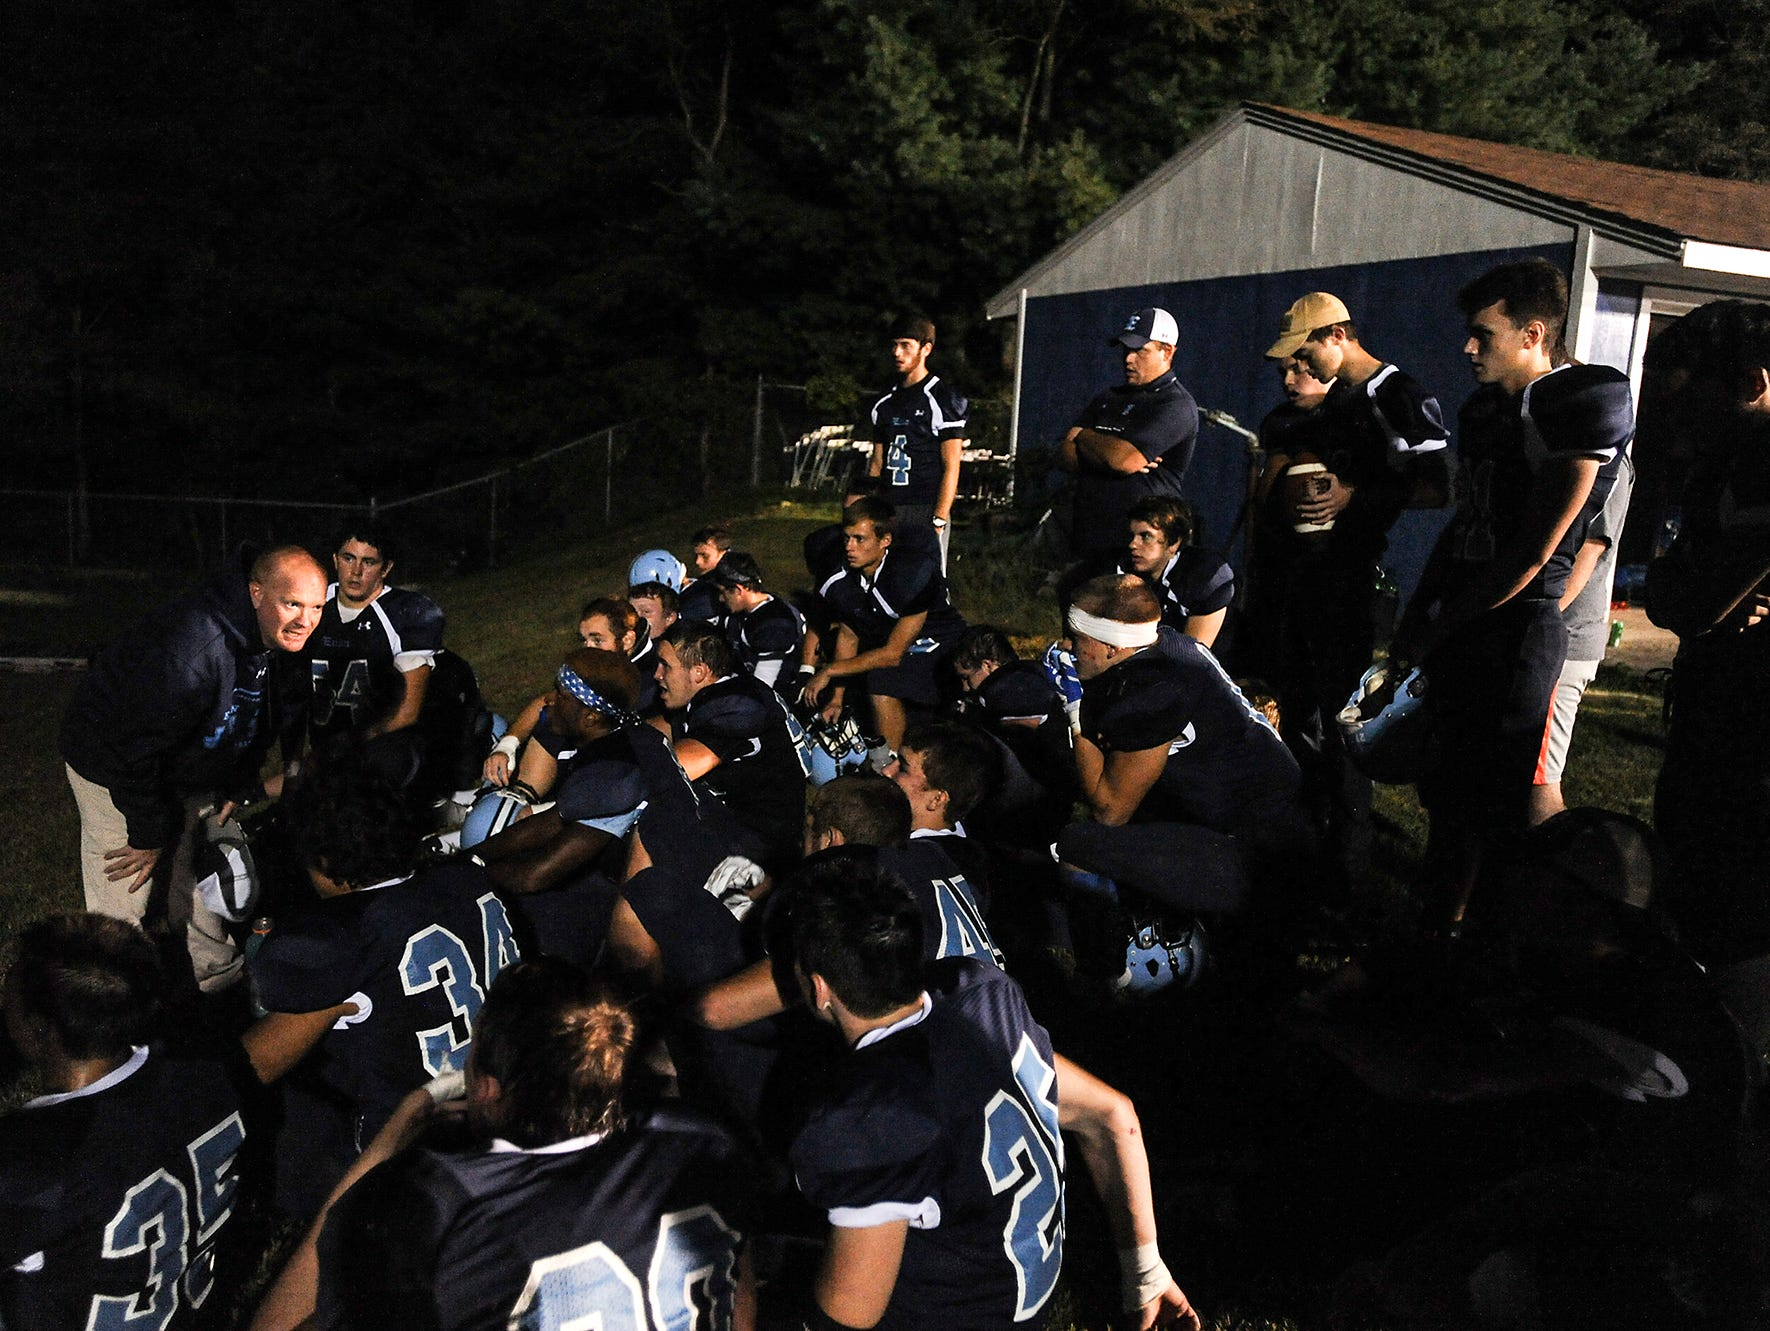 Enka football coach Jeff Frady and the Jets are holding a youth football camp next week at the high school.